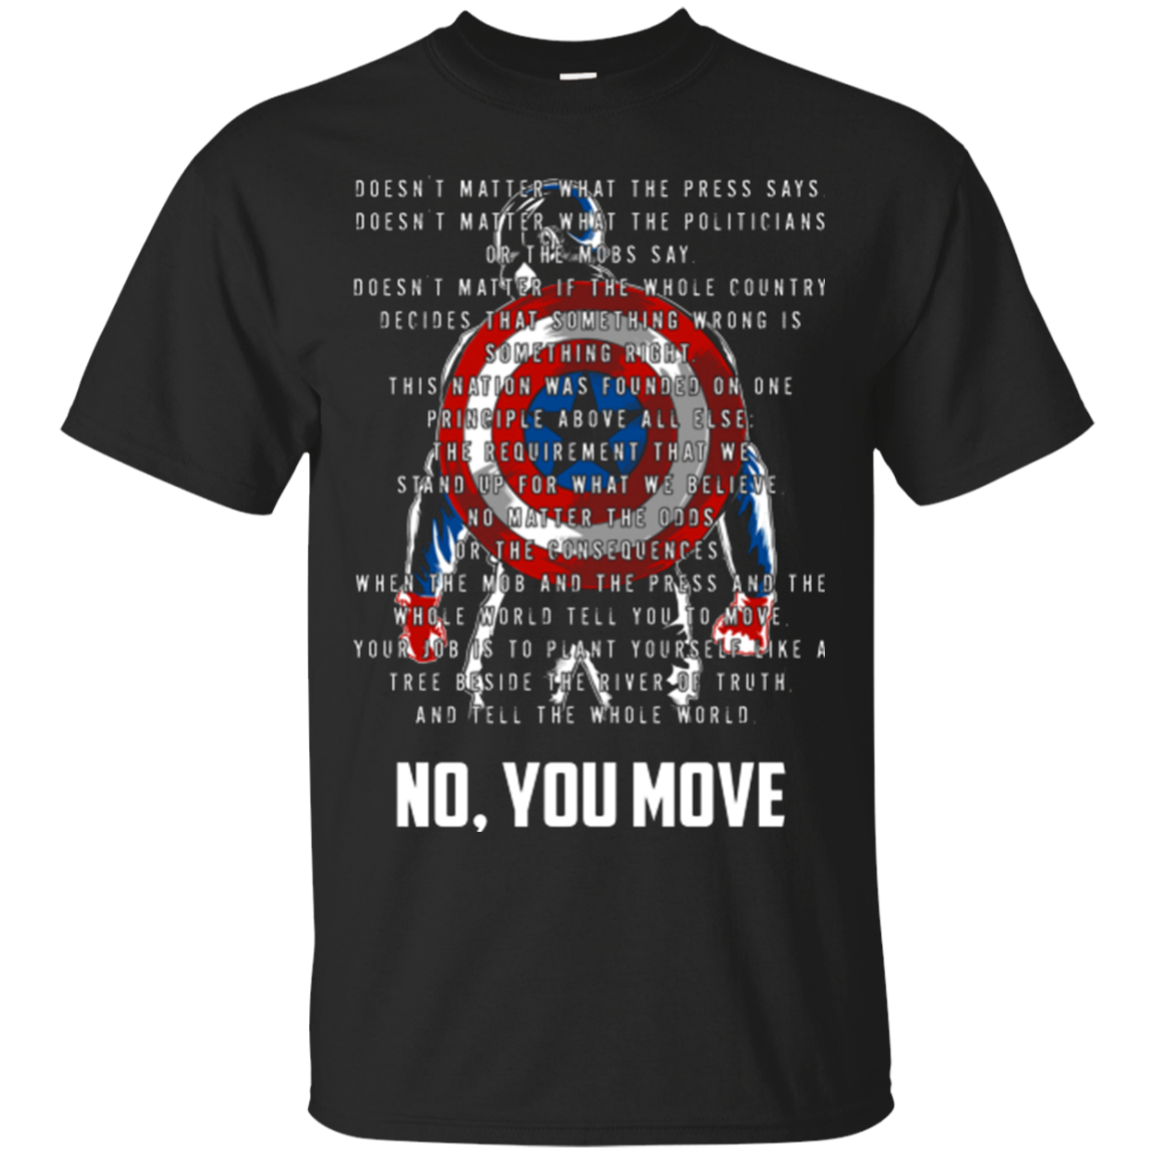 Captain America Shirts Doesn't Matter What The Press Say